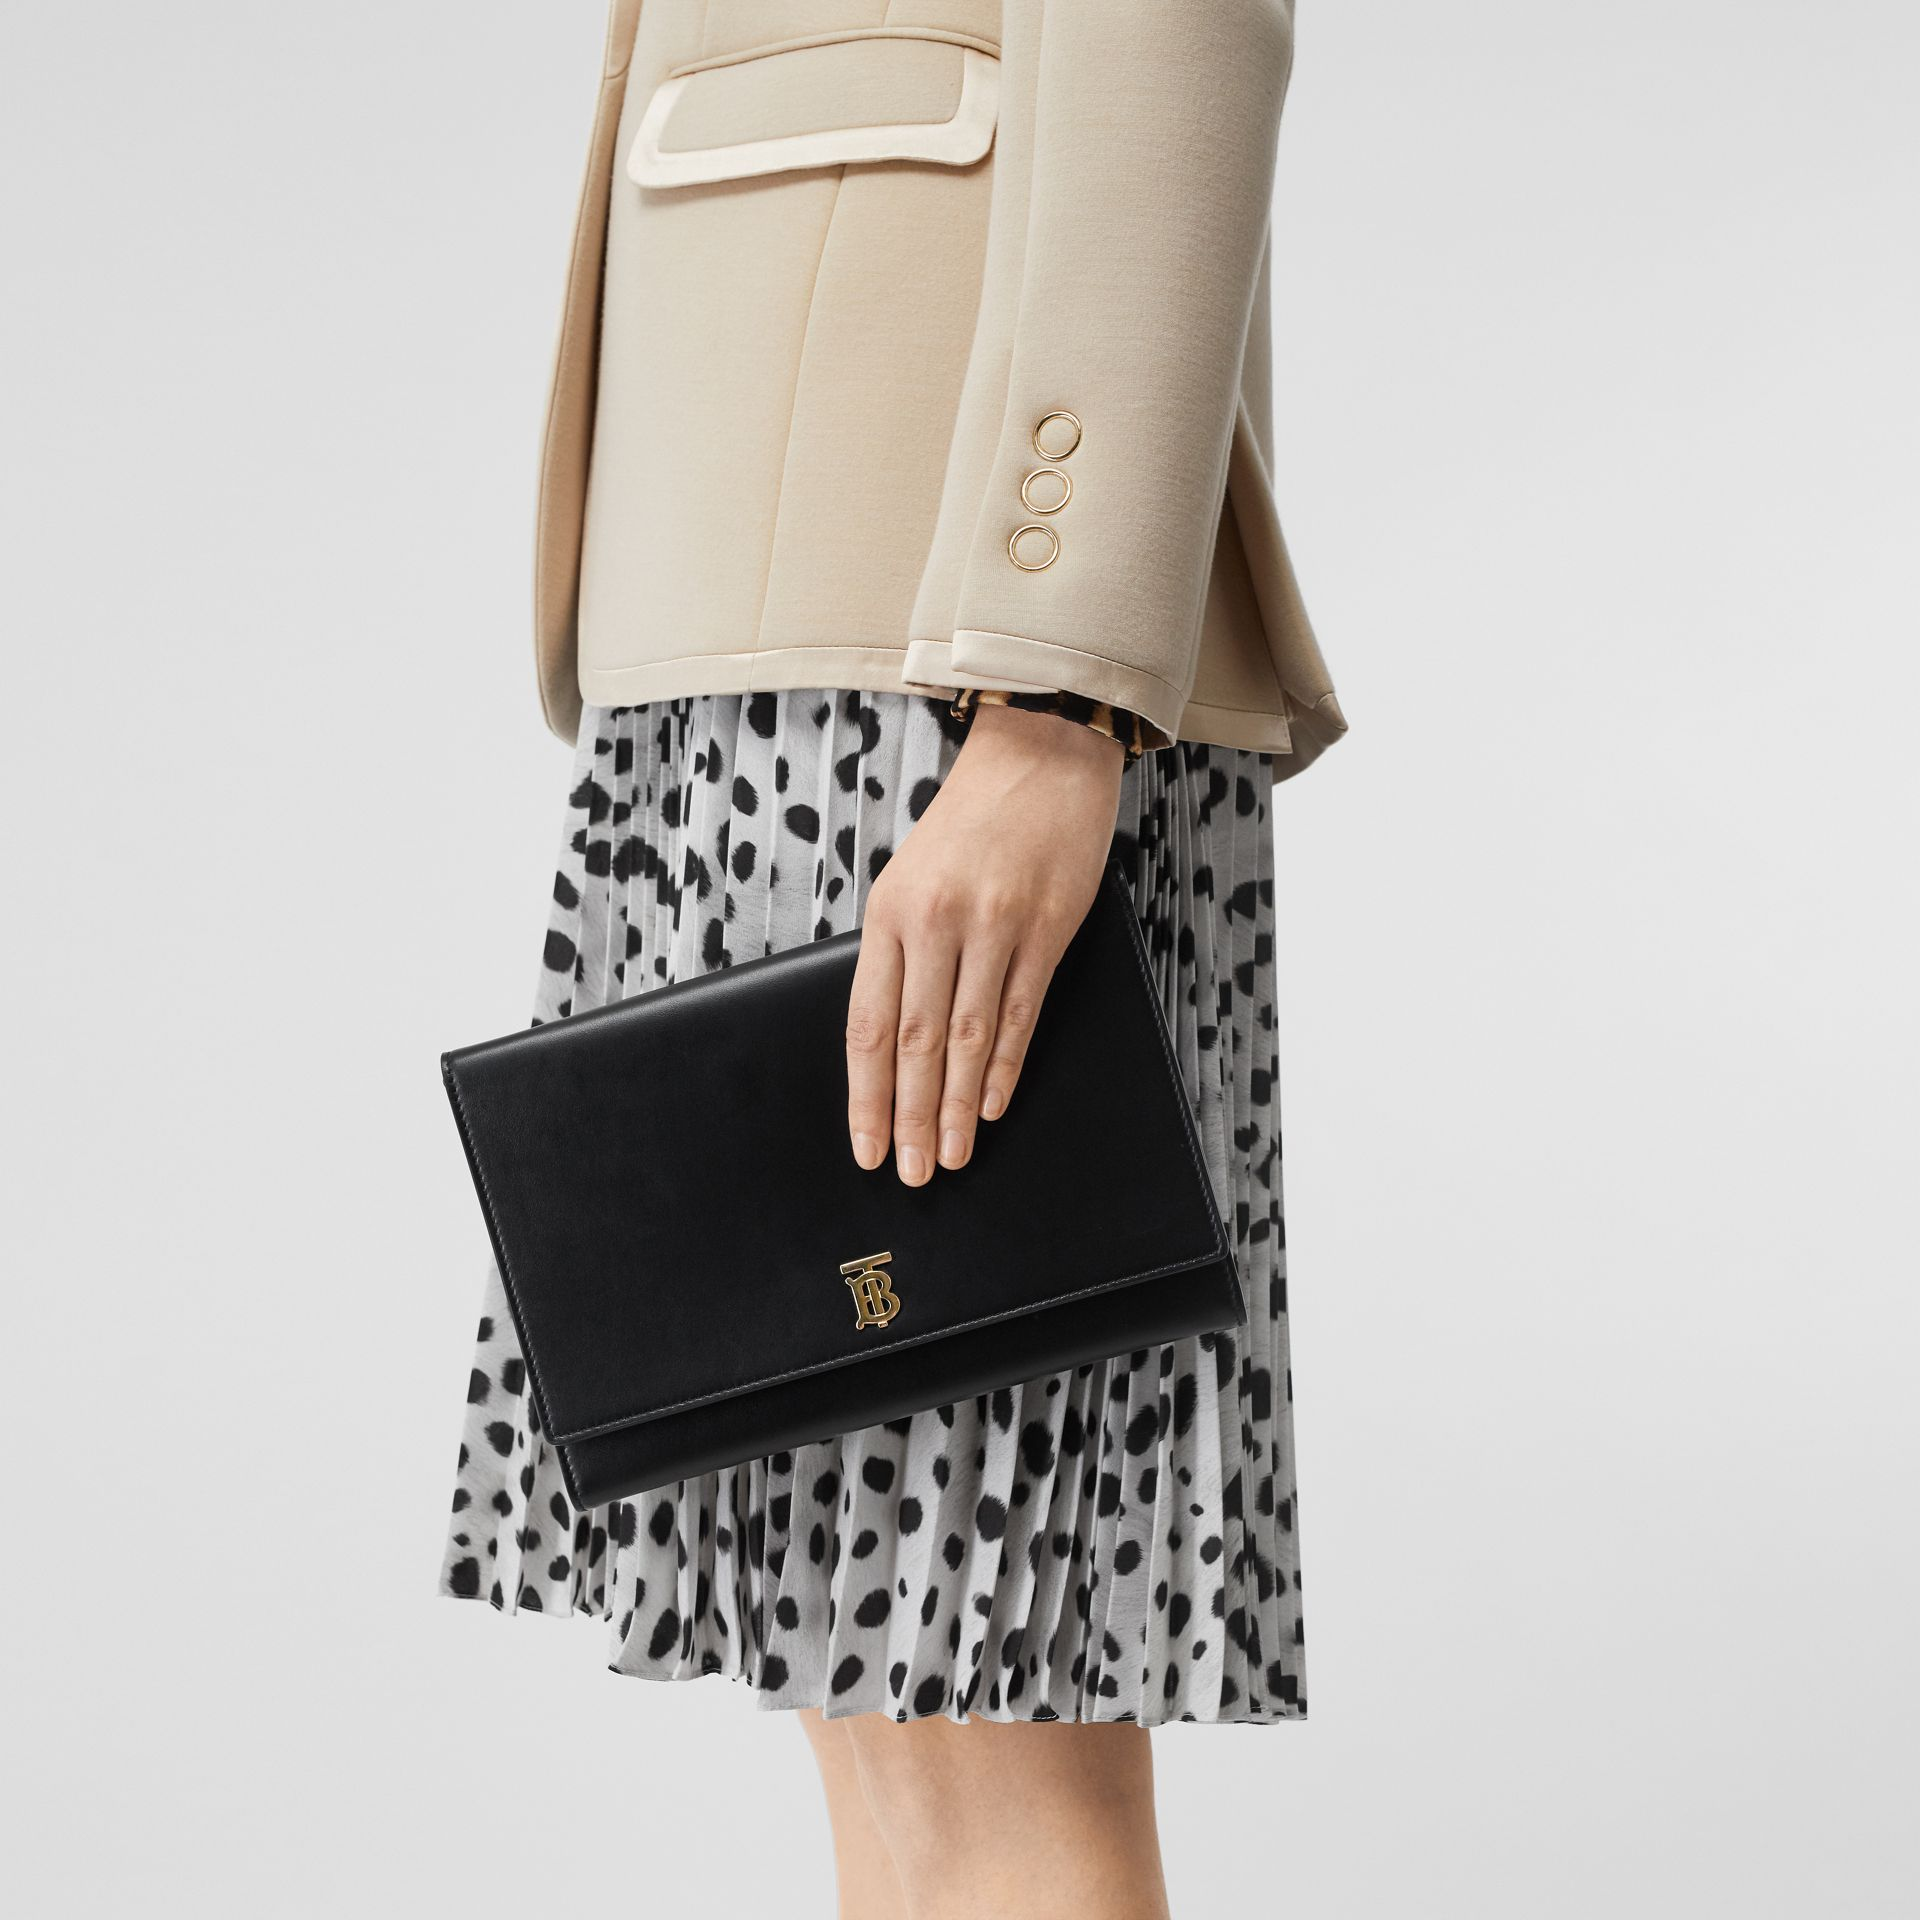 Monogram Motif Leather Bag with Detachable Strap in Black - Women | Burberry United Kingdom - gallery image 2